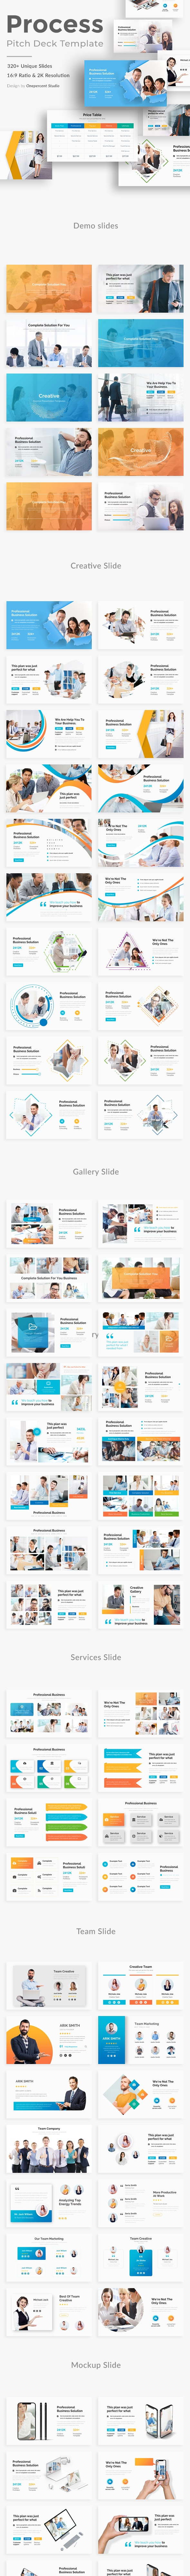 Innovation Process Pitch Deck Powerpoint Template - Business PowerPoint Templates